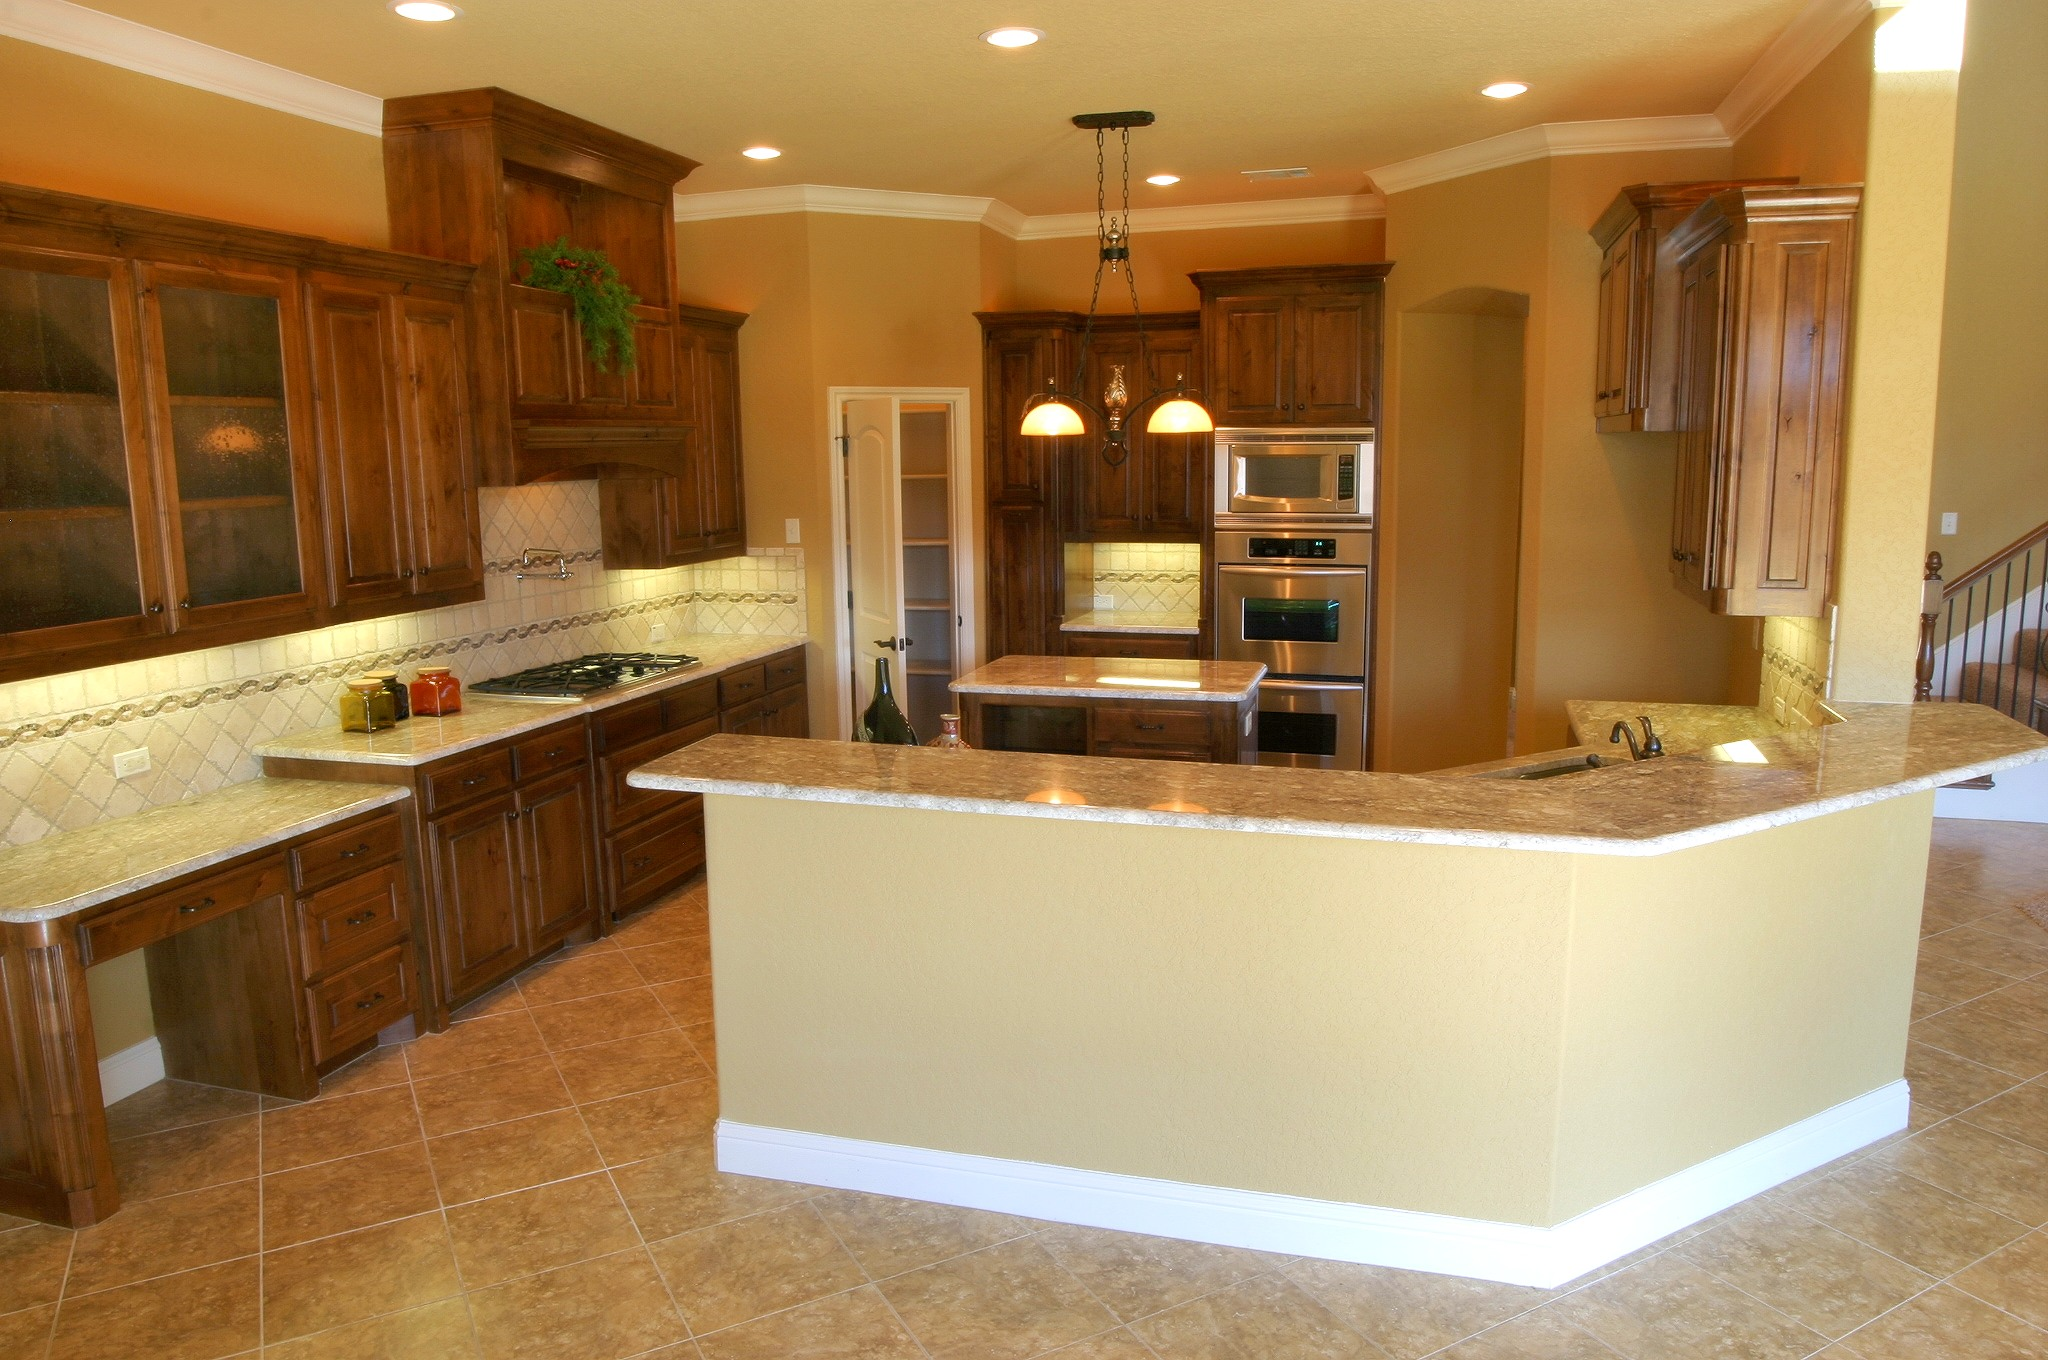 Counter top kitchen tables photo - 1